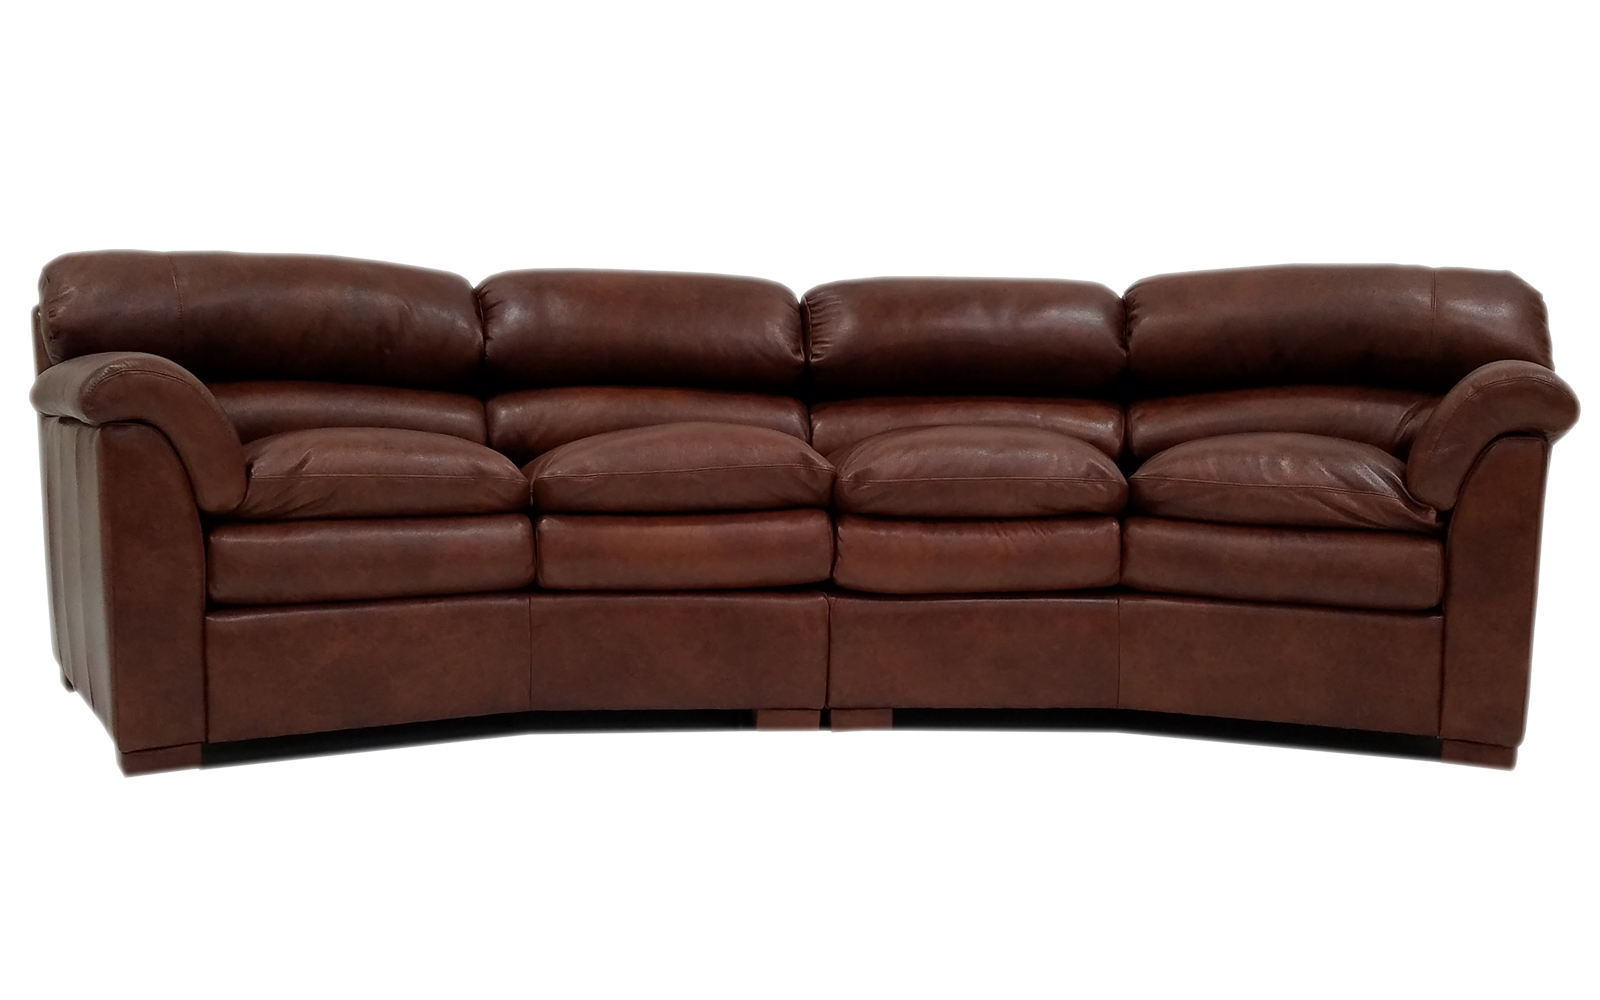 Canyon 4c conversation sofa arizona leather interiors for Conversation sofa